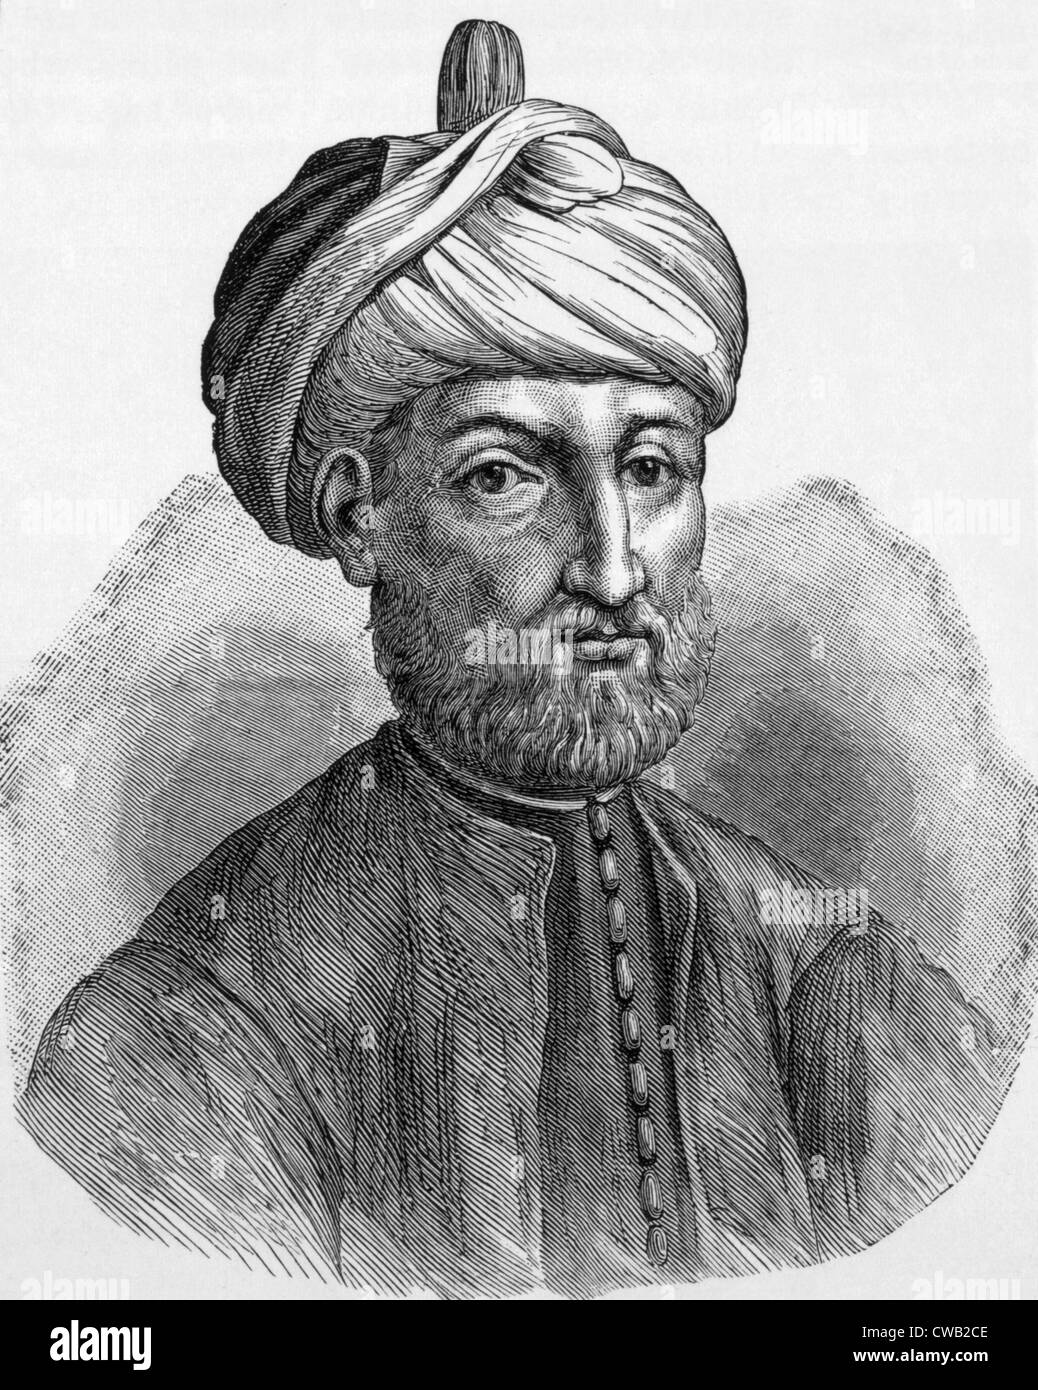 Muhammad, the Prophet of Islam (ca. 570-632 A.D.), engraving from 'Life of the Prophet' by Sieur de Reyr, - Stock Image